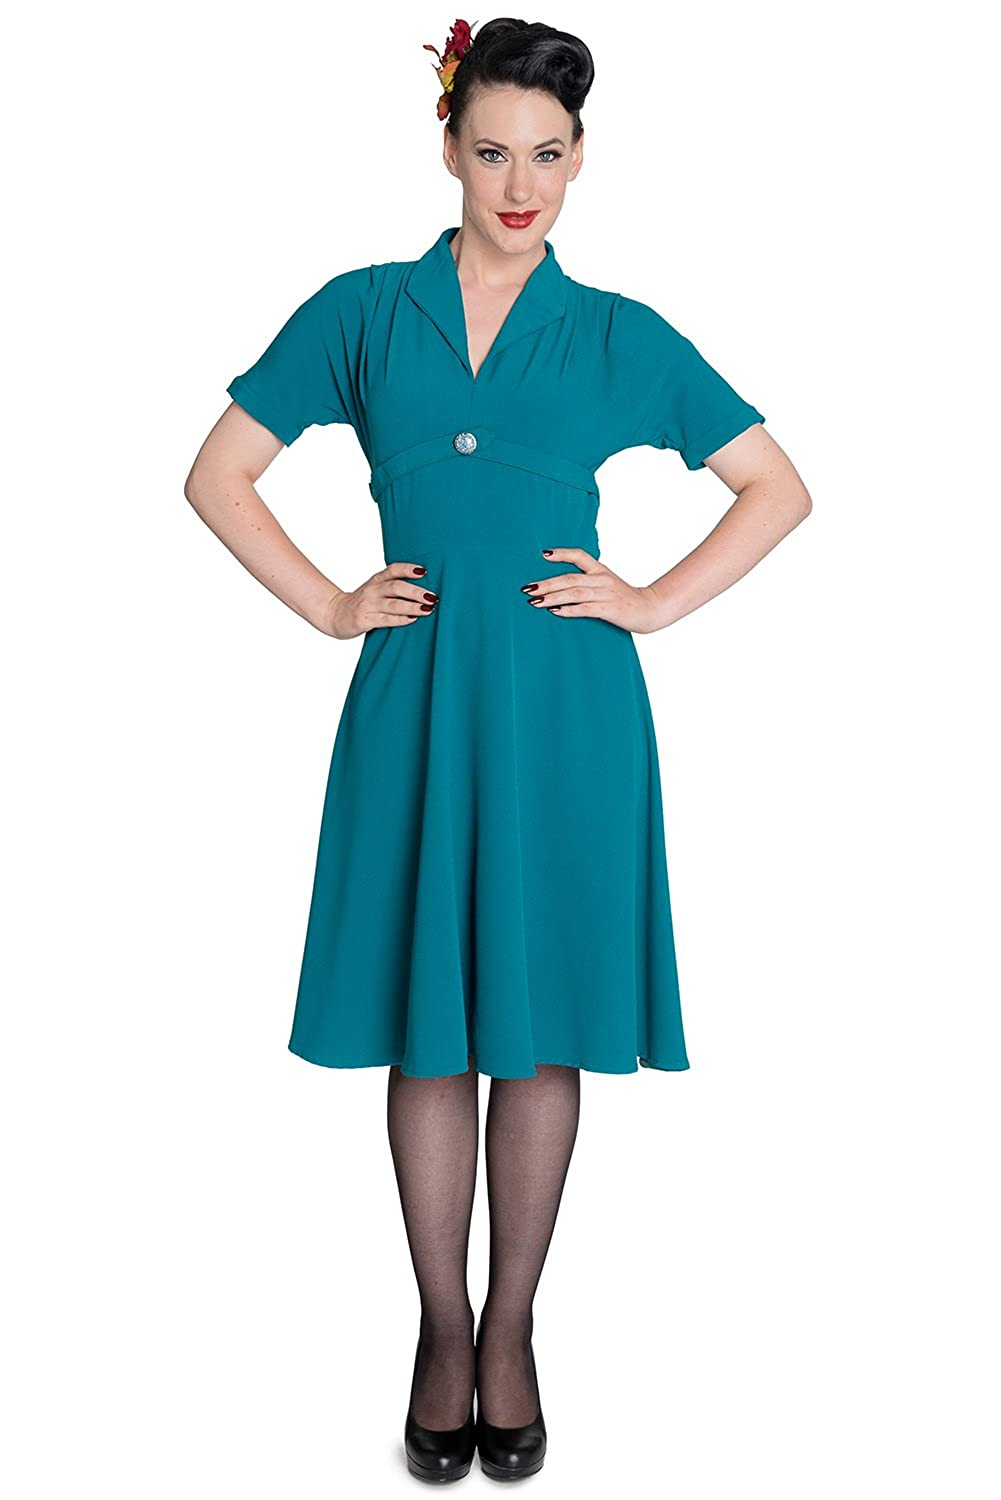 1930s Style Fashion Dresses 40s Hell Bunny Jocelyn Retro Rockabilly Landgirl Dress.99 AT vintagedancer.com